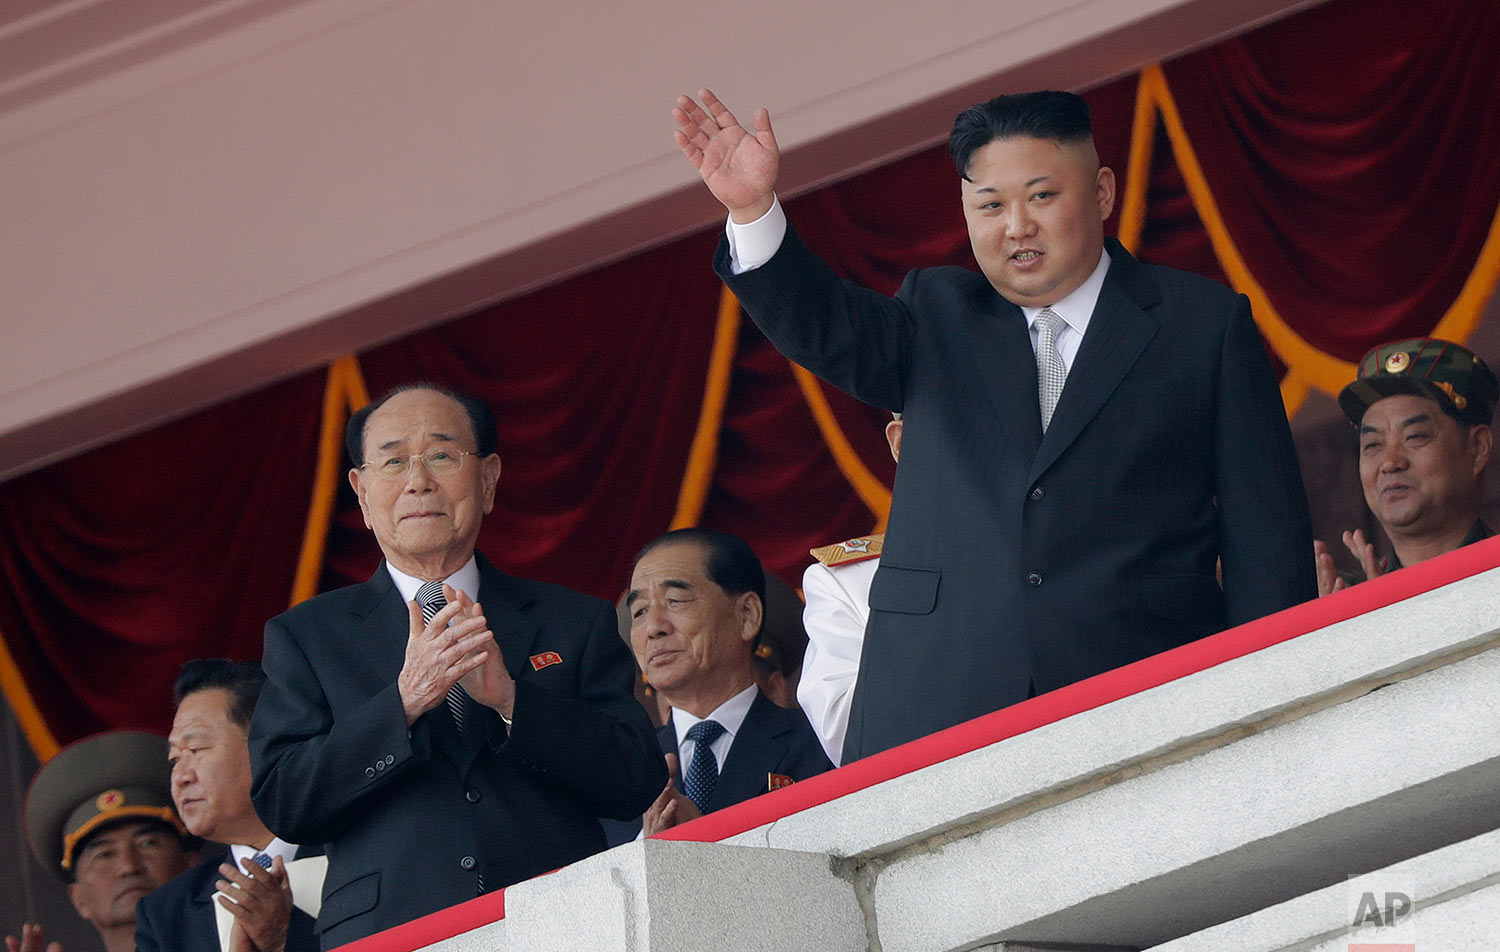 North Korean leader Kim Jong Un, right, waves while Kim Yong Nam, third left, Choe Ryong Hae, second left, and Pak Pong Ju, center, clap during a military parade on Saturday, April 15, 2017, in Pyongyang, North Korea to celebrate the 105th birth anniversary of Kim Il Sung, the country's late founder and grandfather of current ruler Kim Jong Un. (AP Photo/Wong Maye-E)